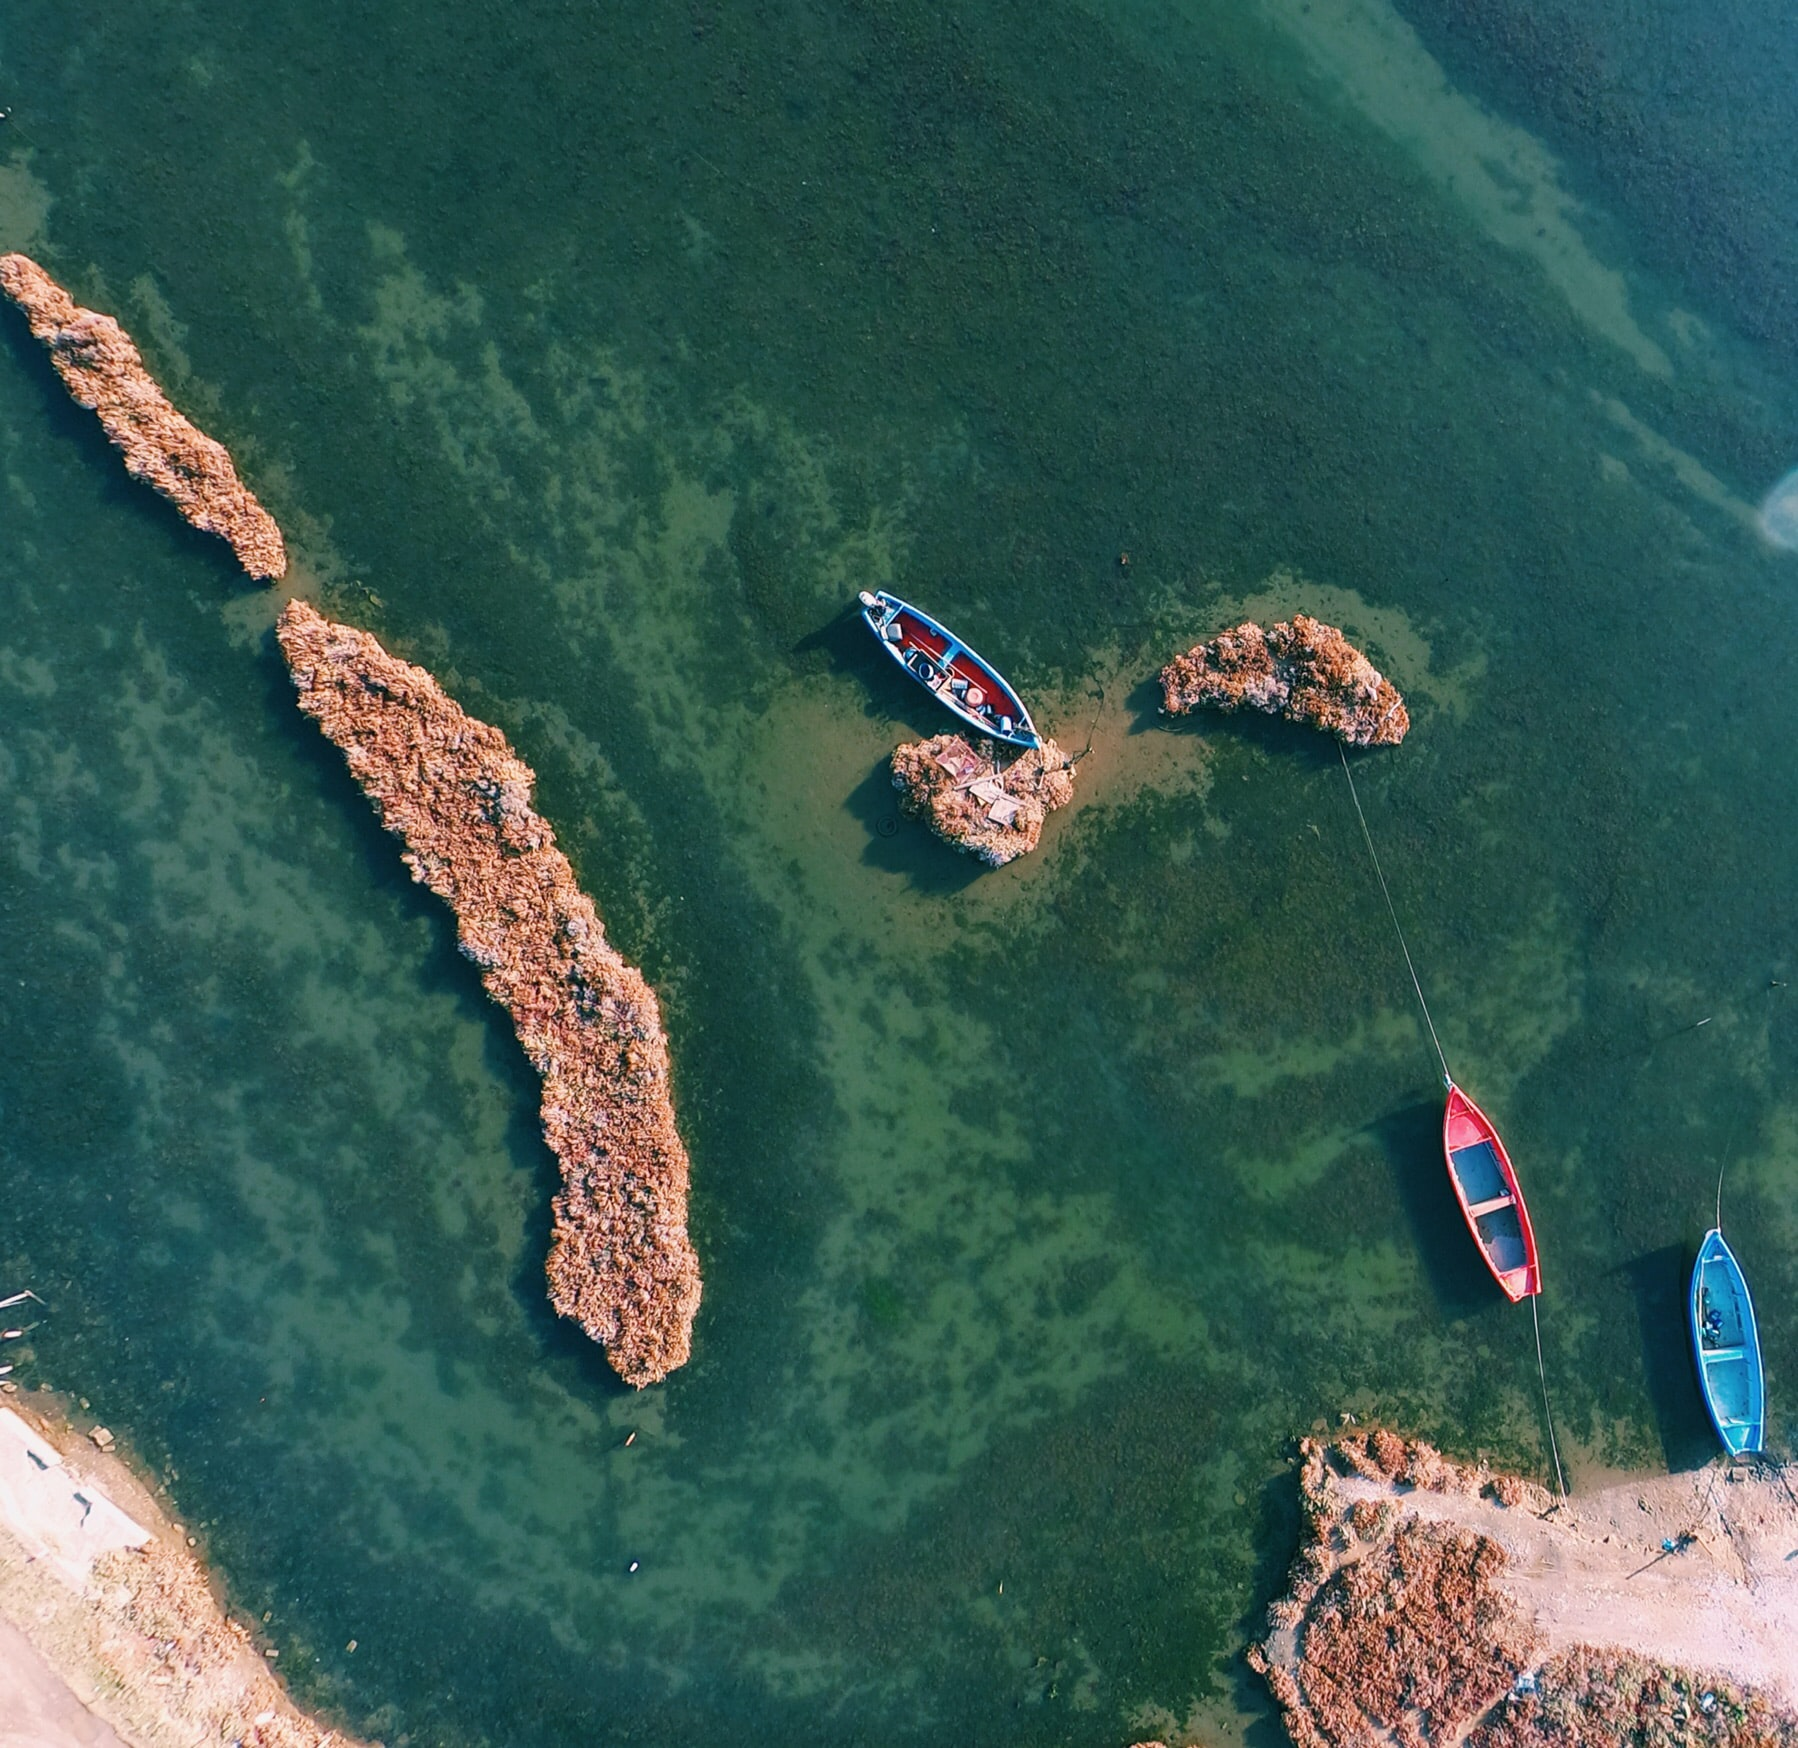 bird's-eye view photography of three assorted-color boats docked on white rocks